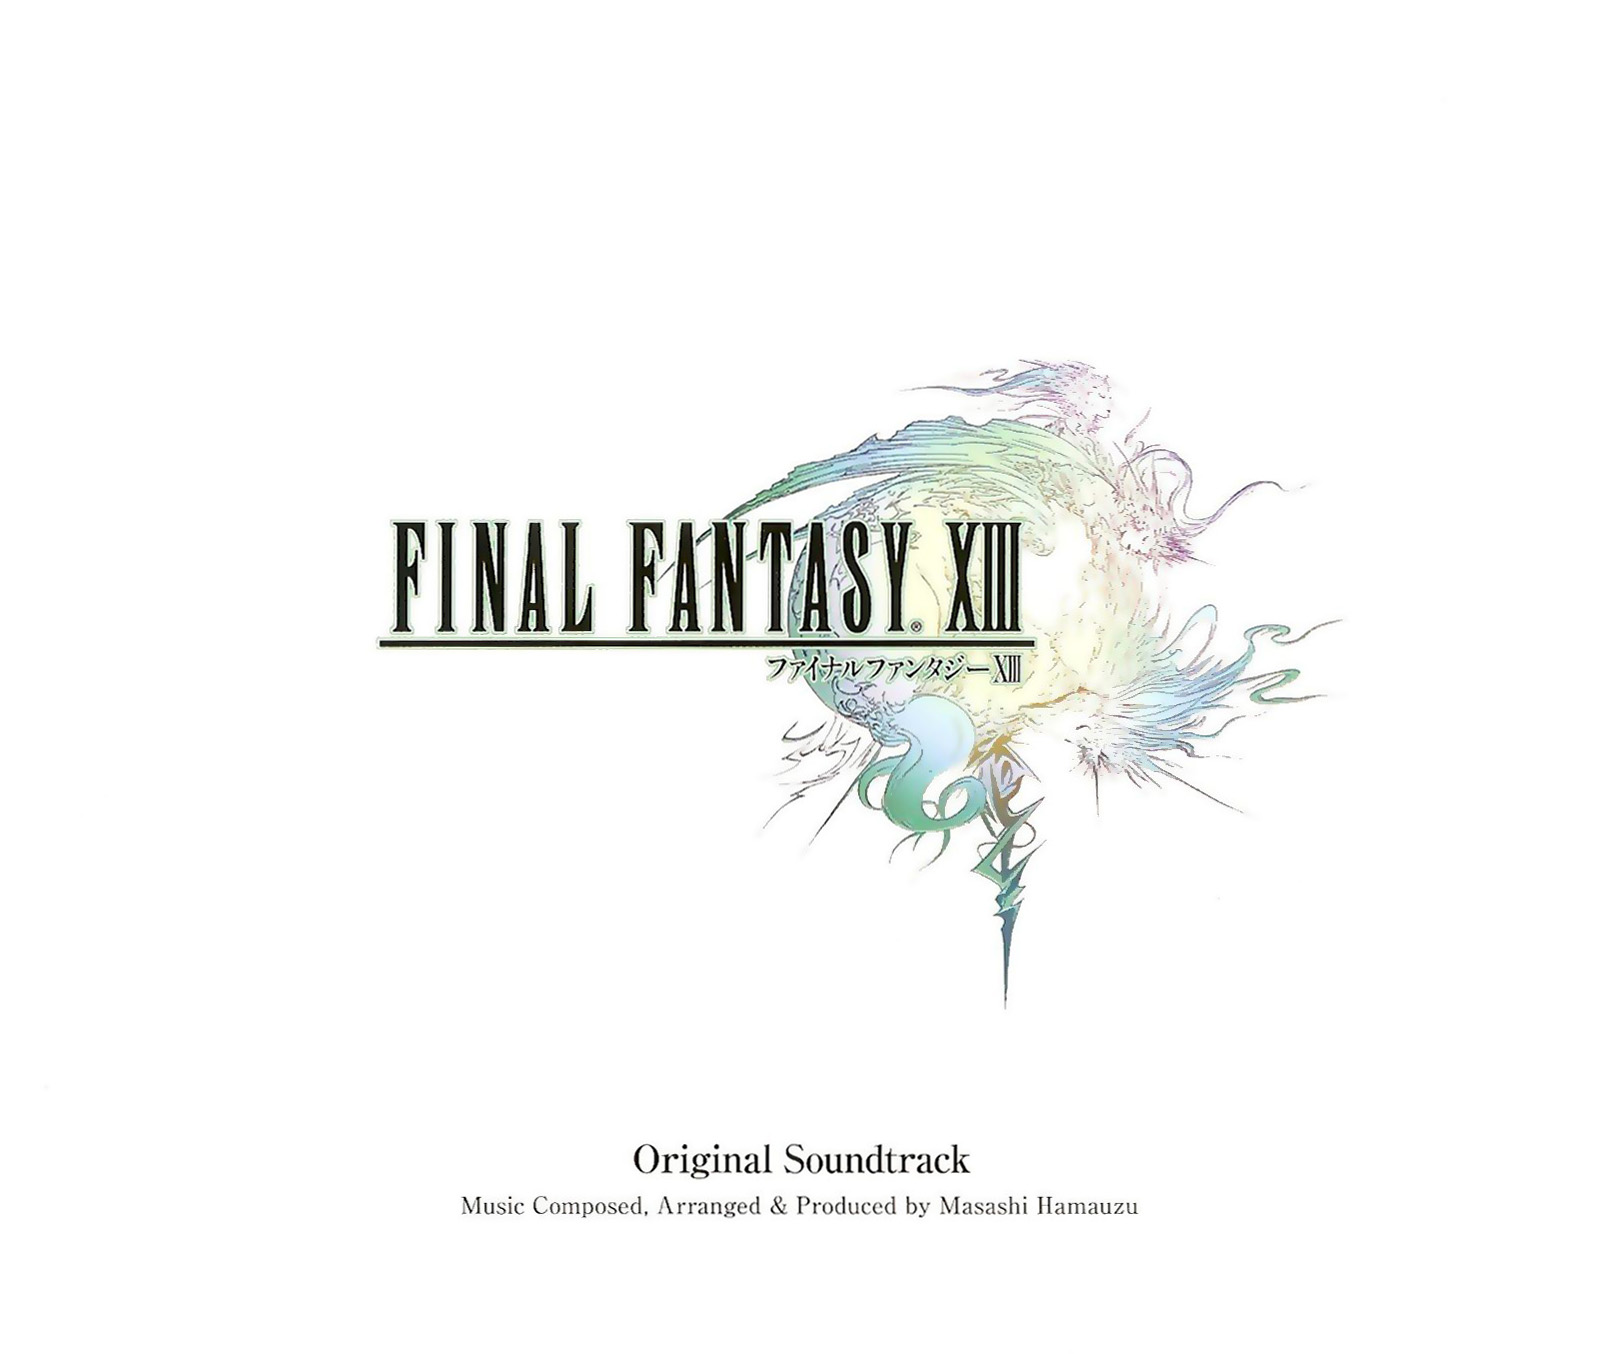 Final Fantasy XIII Original Soundtrack OST MP3 Downloads